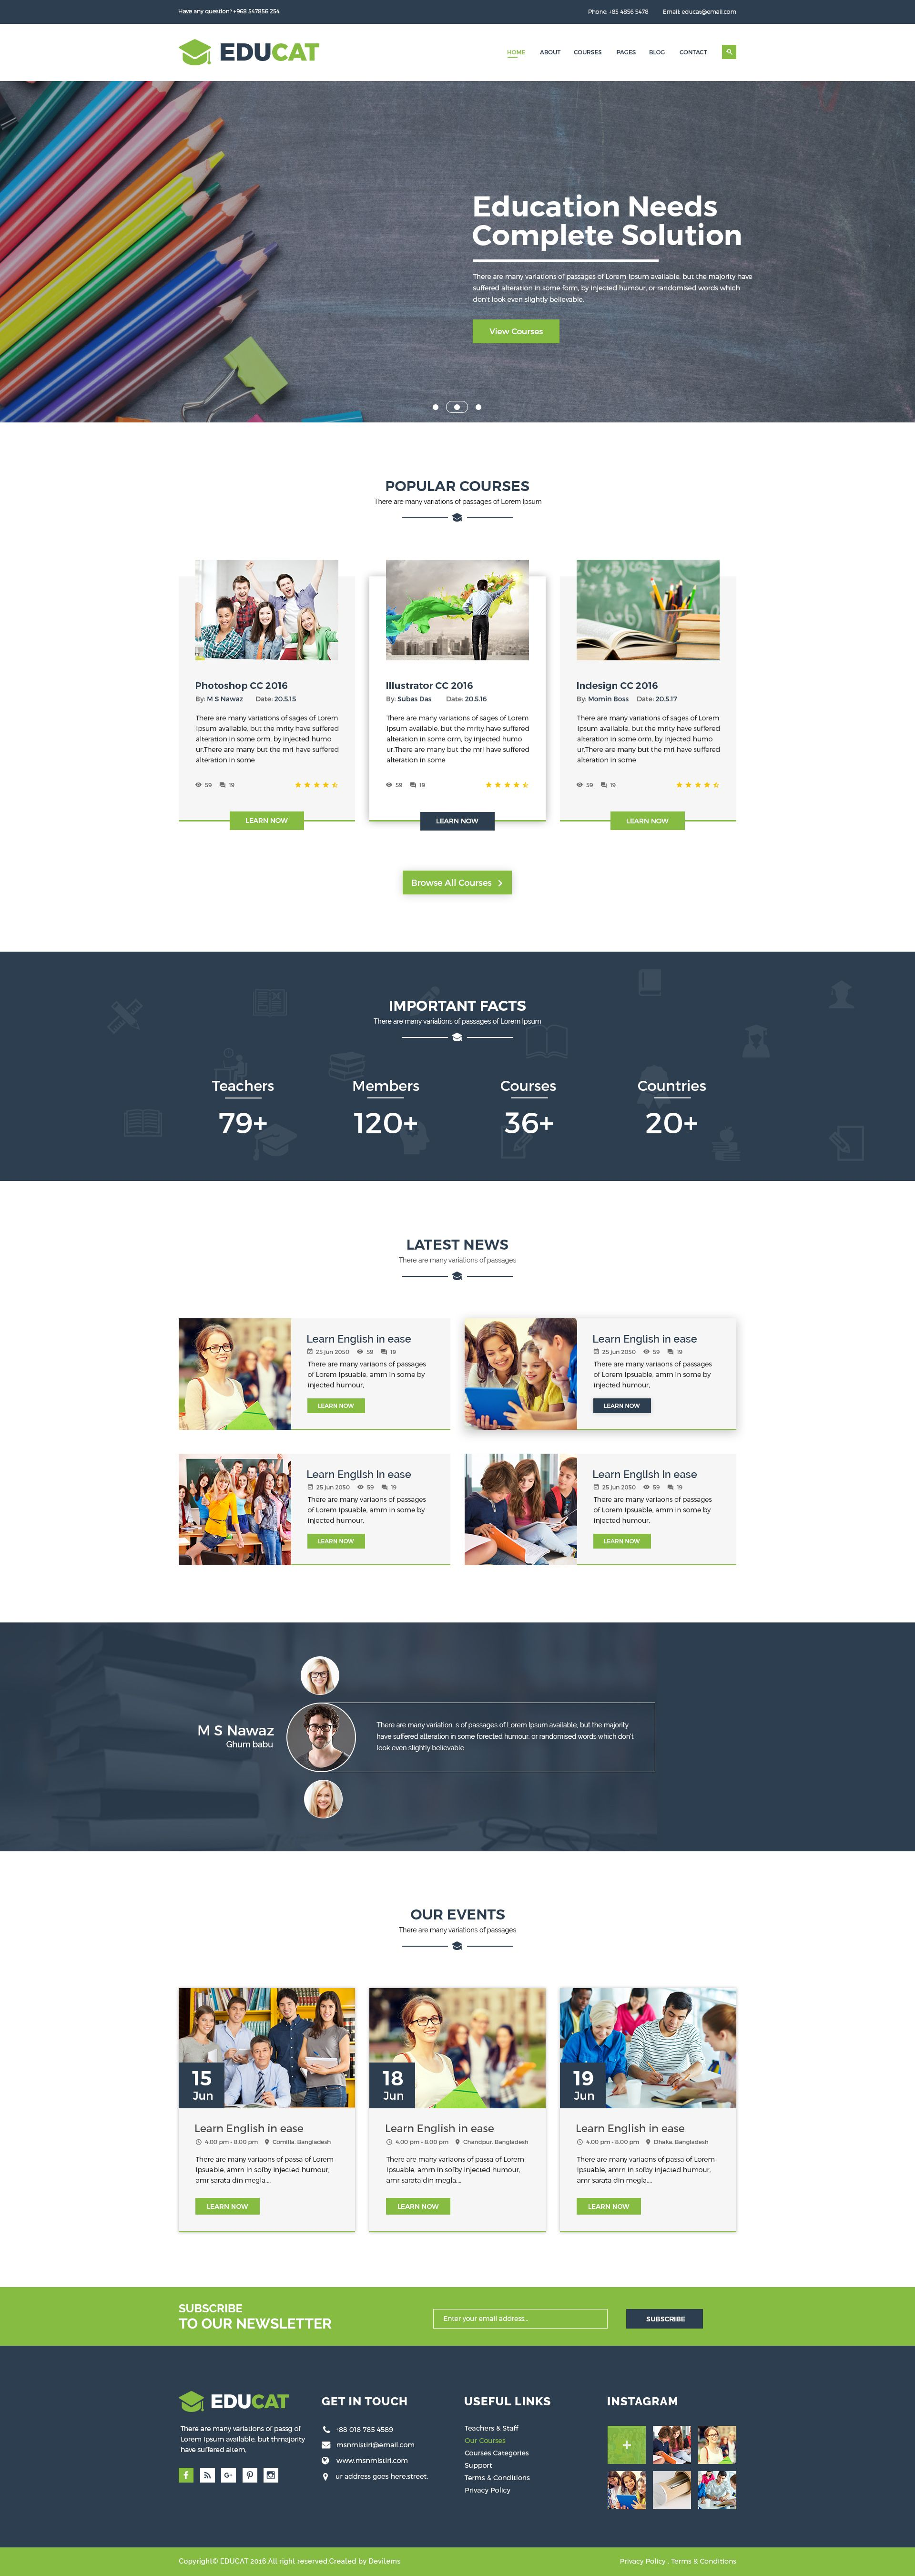 Educat - Education HTML Template Screenshot 2